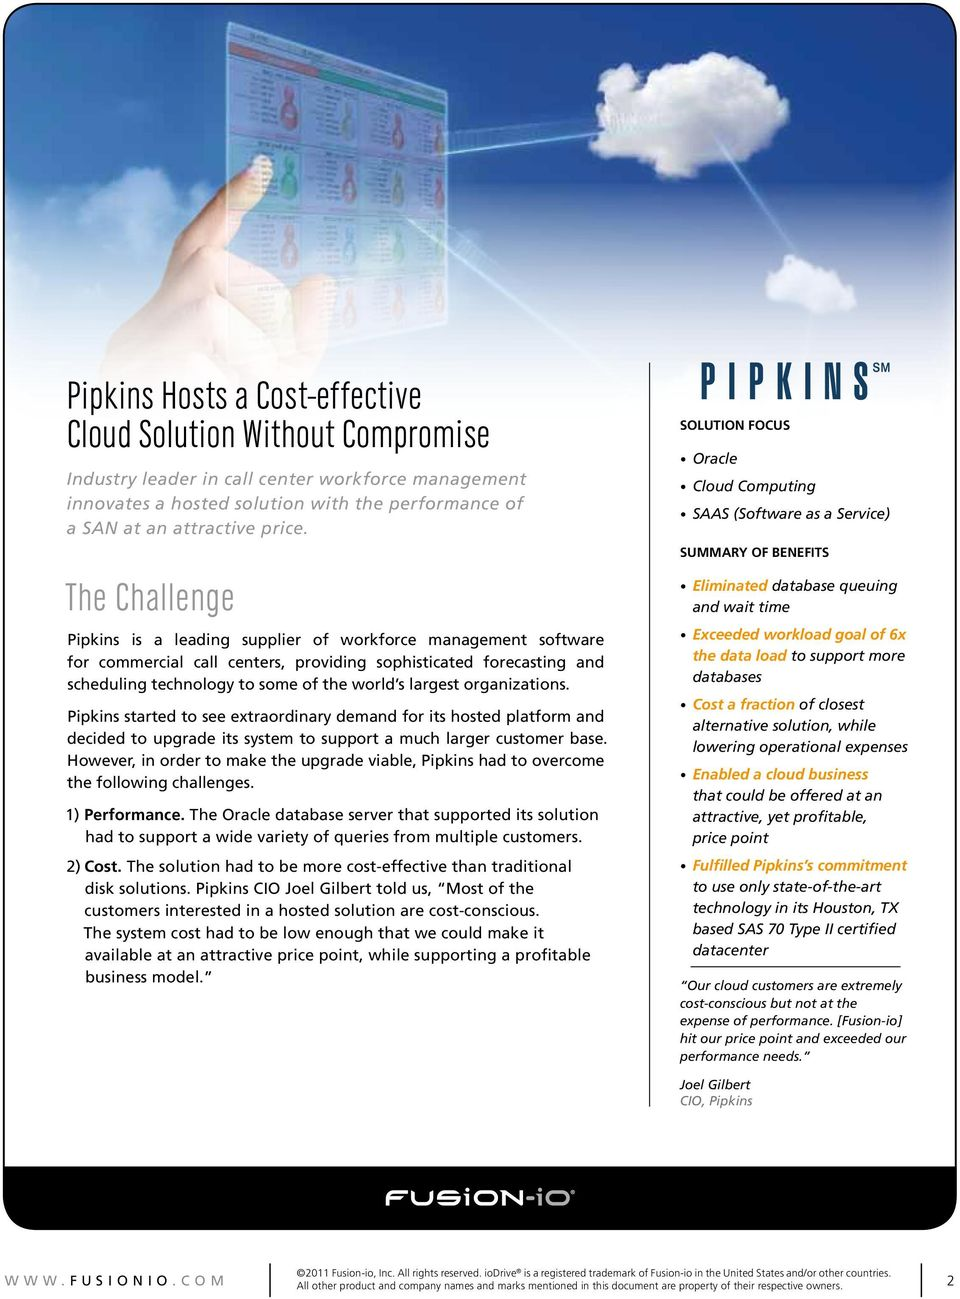 organizations. Pipkins started to see extraordinary demand for its hosted platform and decided to upgrade its system to support a much larger customer base.